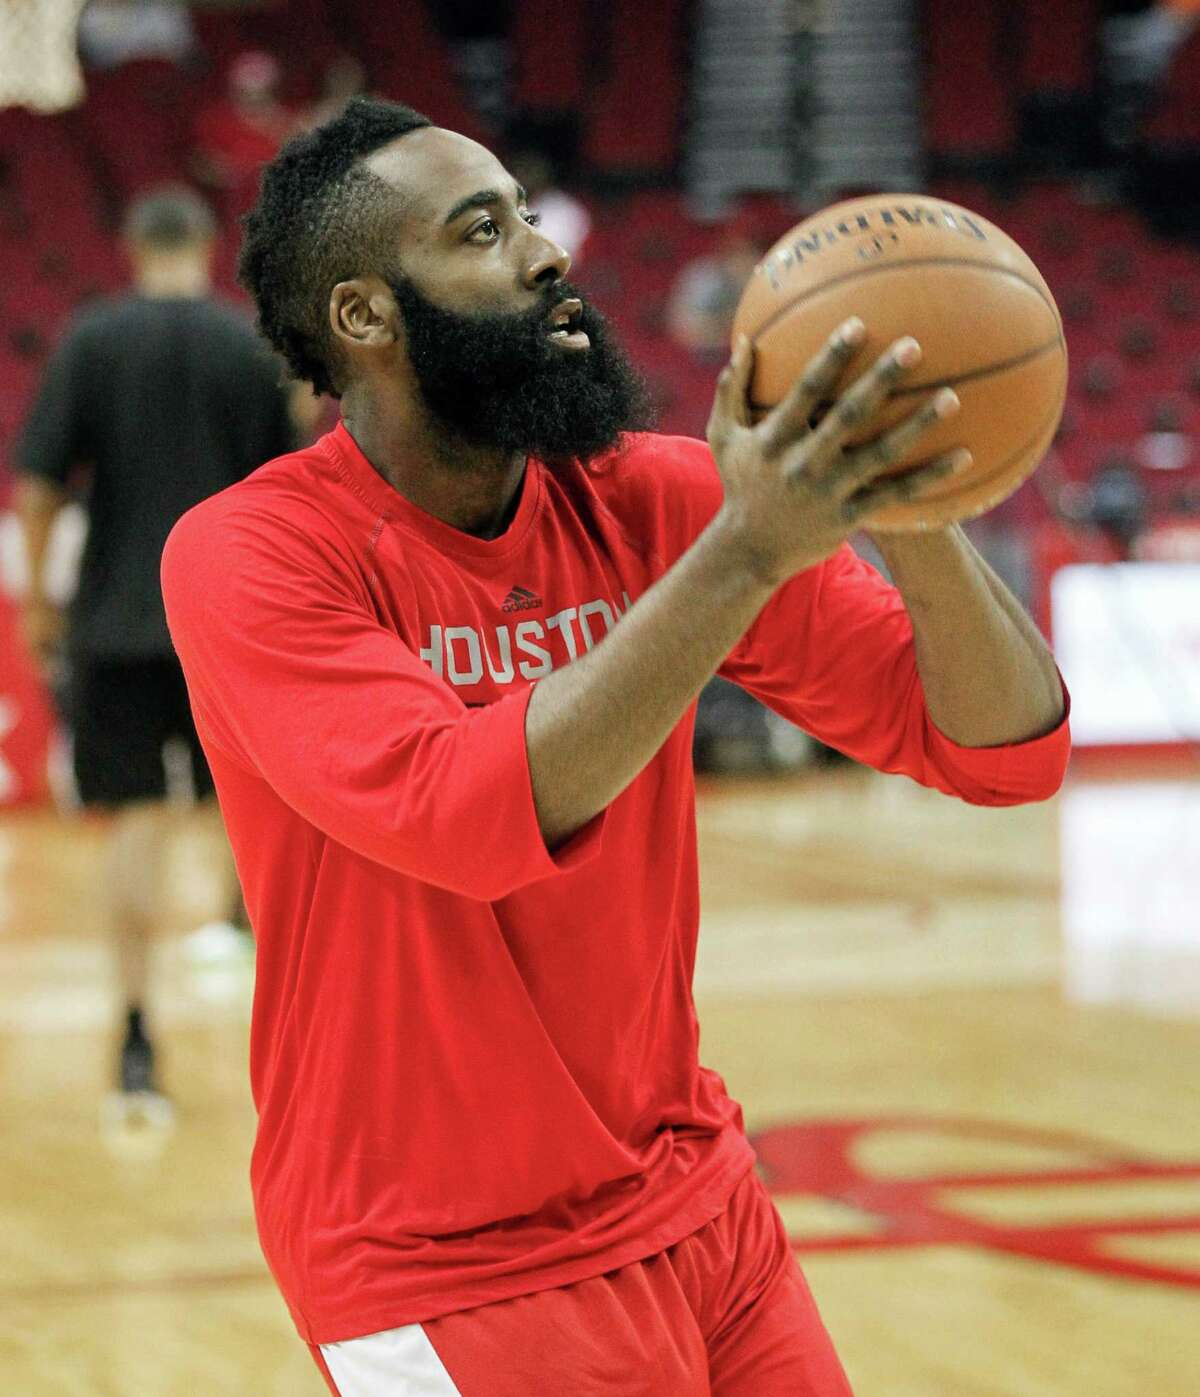 Houston Rockets' James Harden warms up before playing the San Antonio Spurs in an NBA basketball game Friday, April 10, 2015, in Houston.